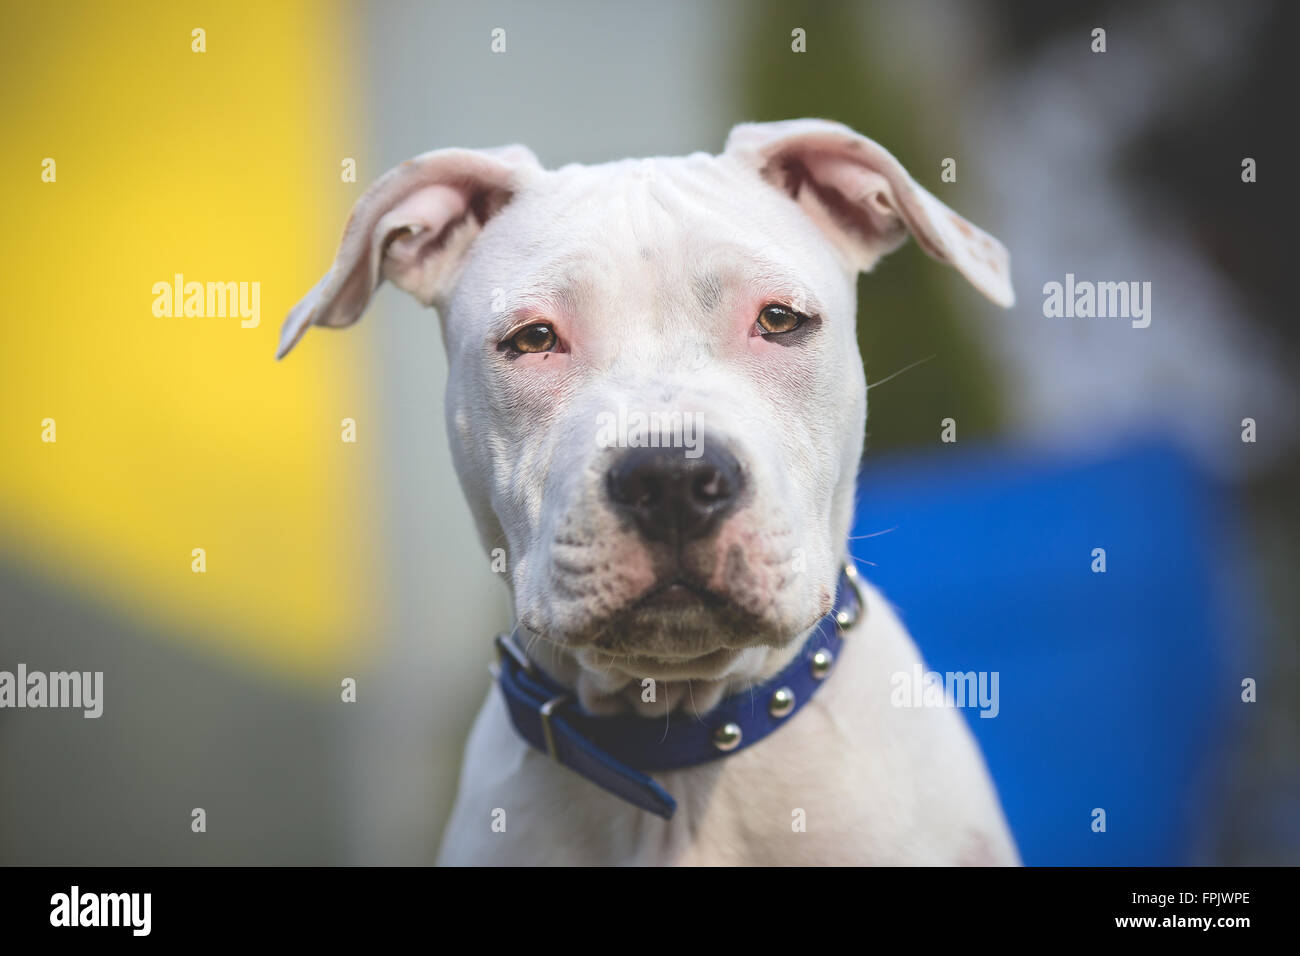 American Staffordshire Terrier young dog portrait - Stock Image